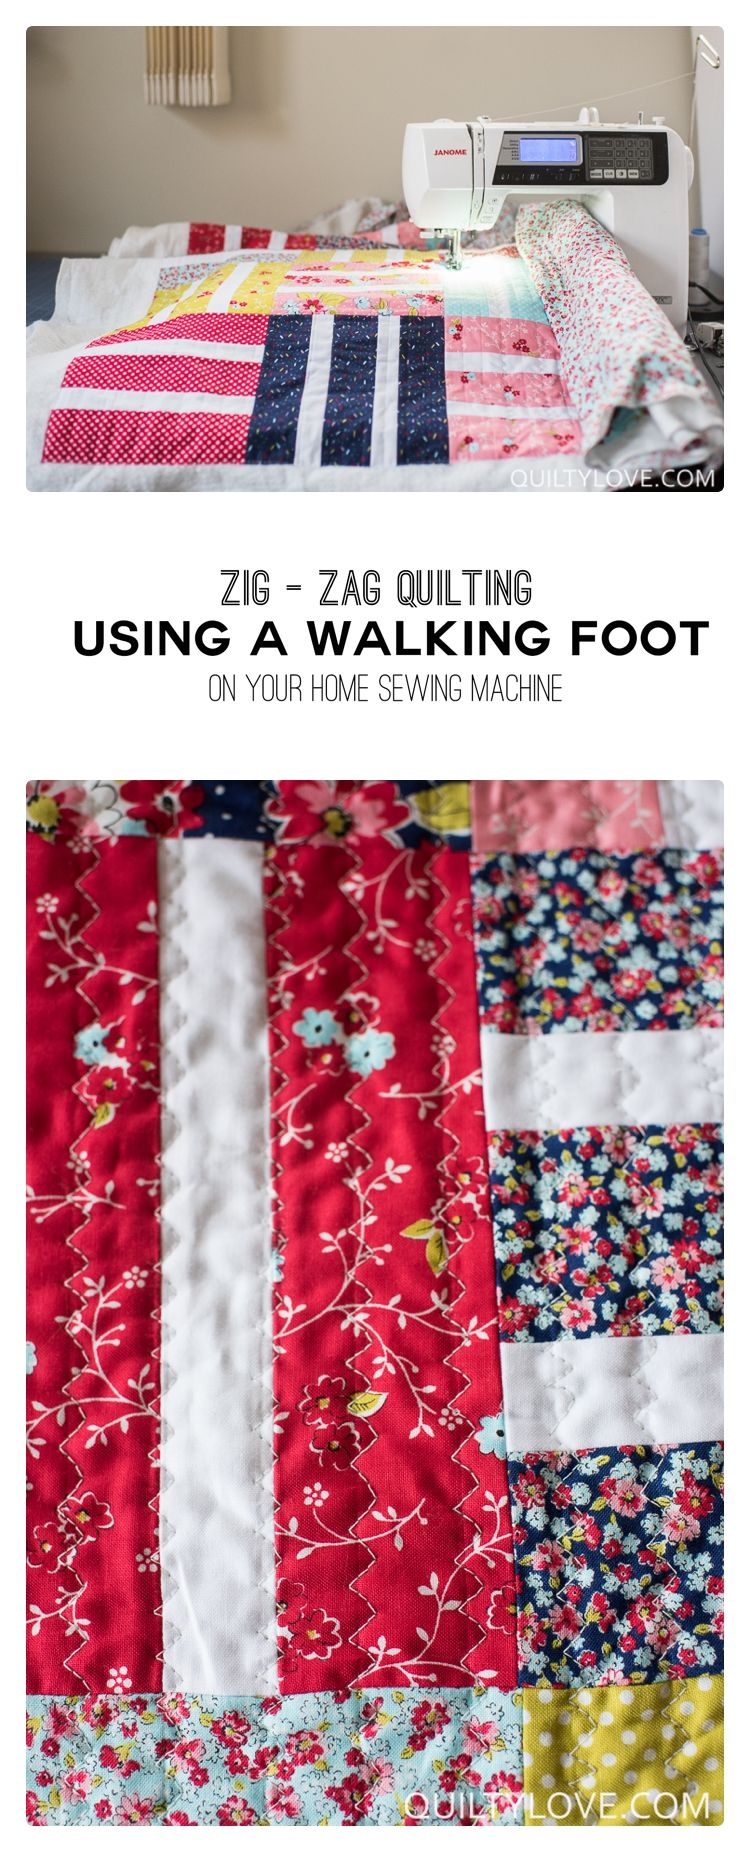 How to quilt Zig zag walking foot quilting on a home sewing